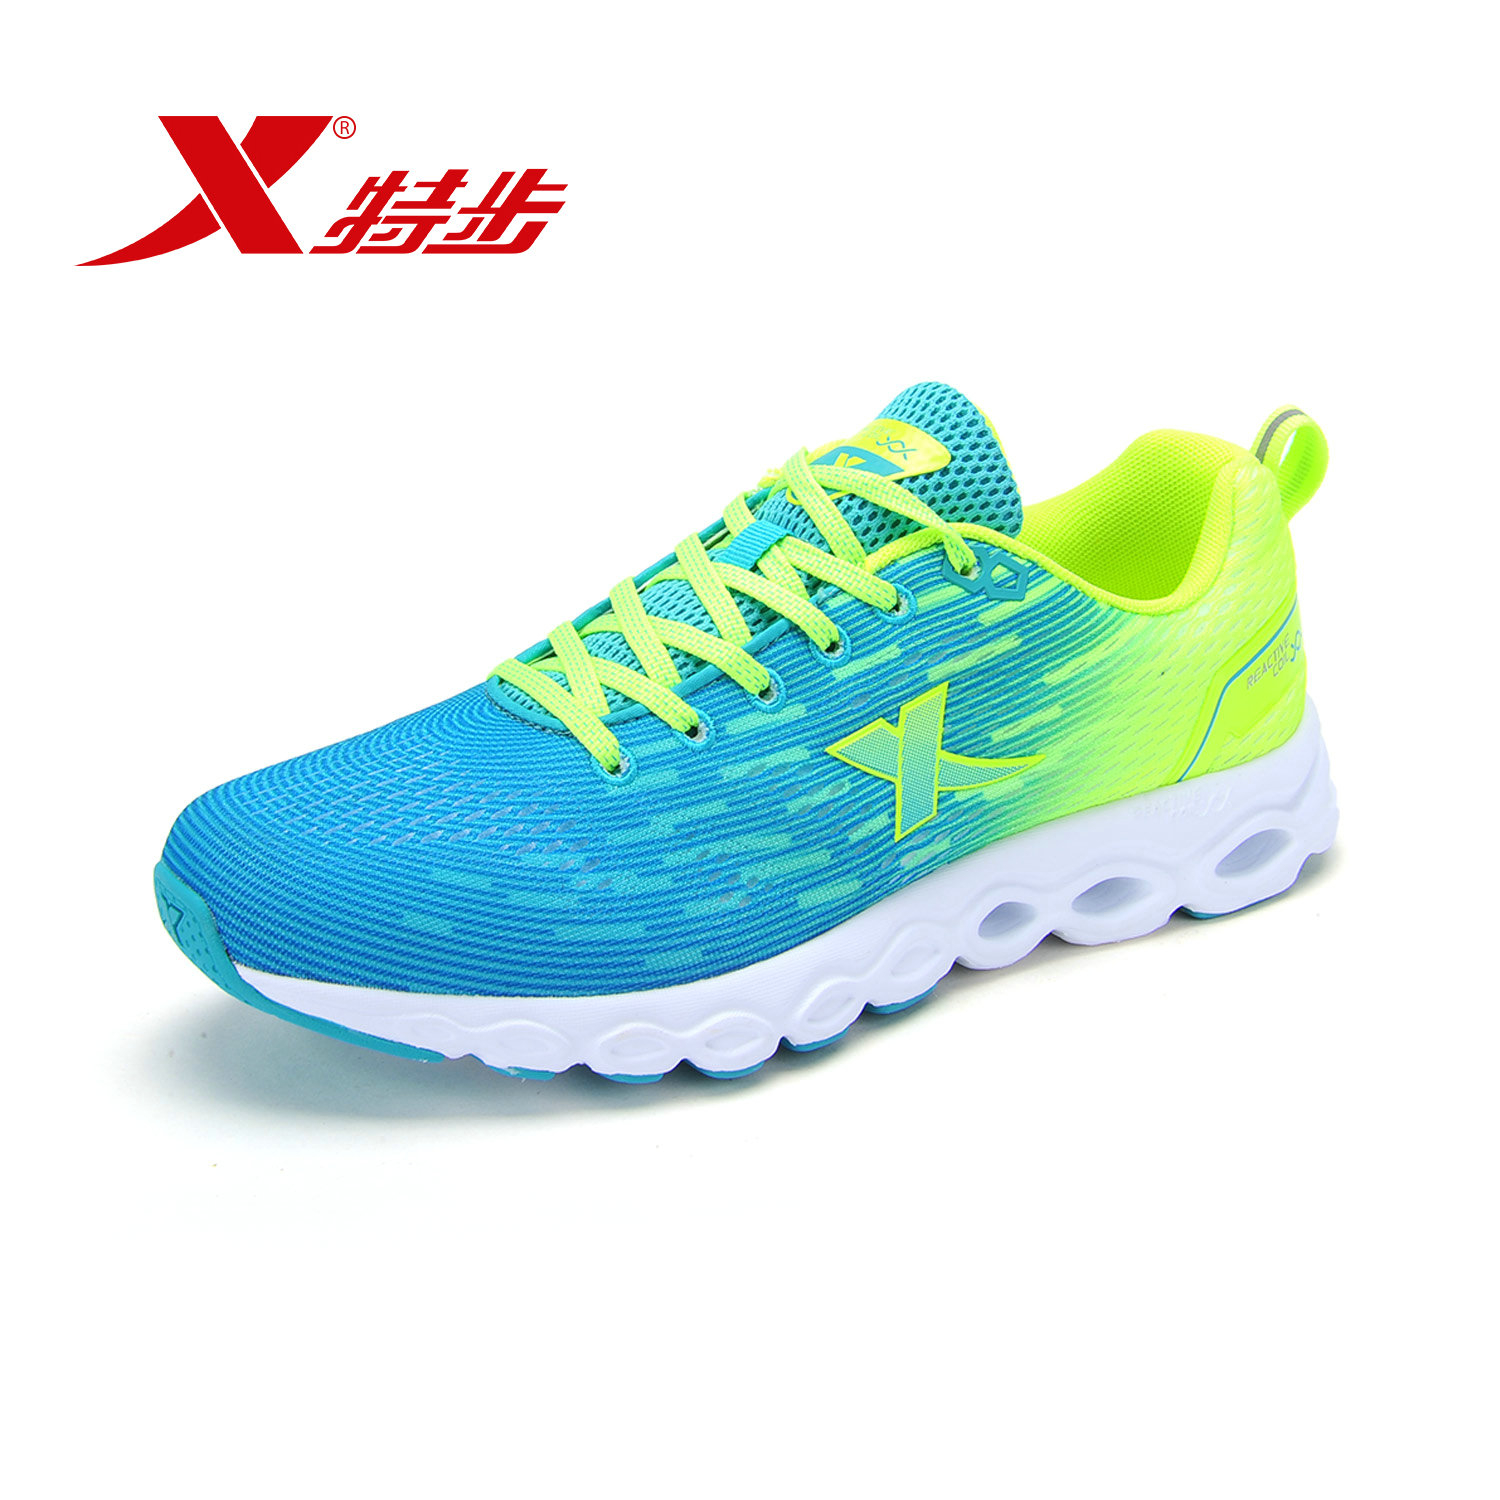 Xtep genuine men's 2016 new running shoes men's summer shoes breathable lightweight running shoes sneakers hit the color